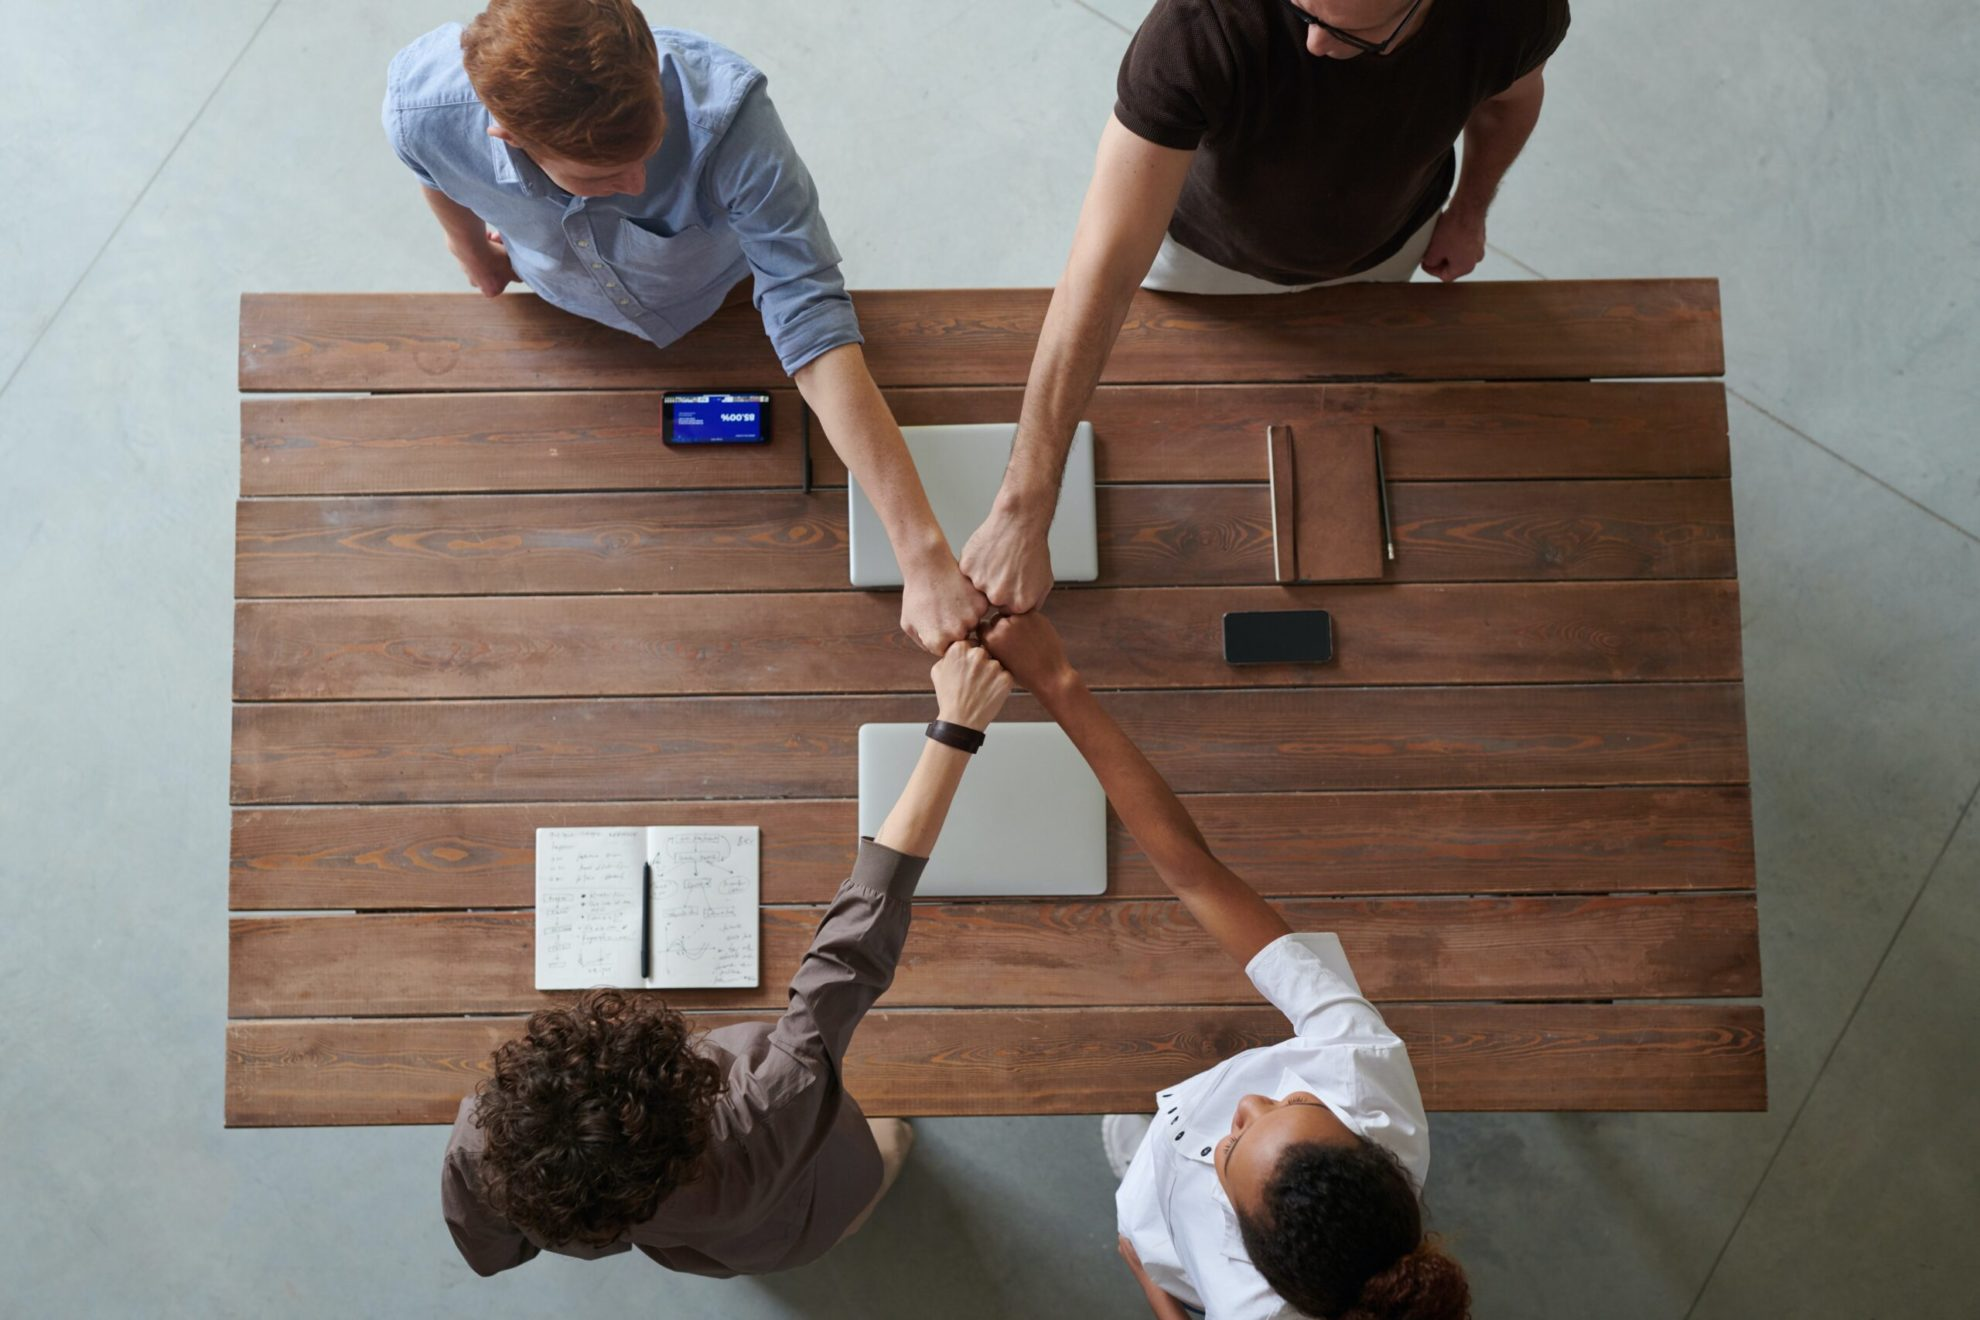 Do you want to learn to collaborate better? Our teamwork training courses can help you to inspire and empower your colleagues